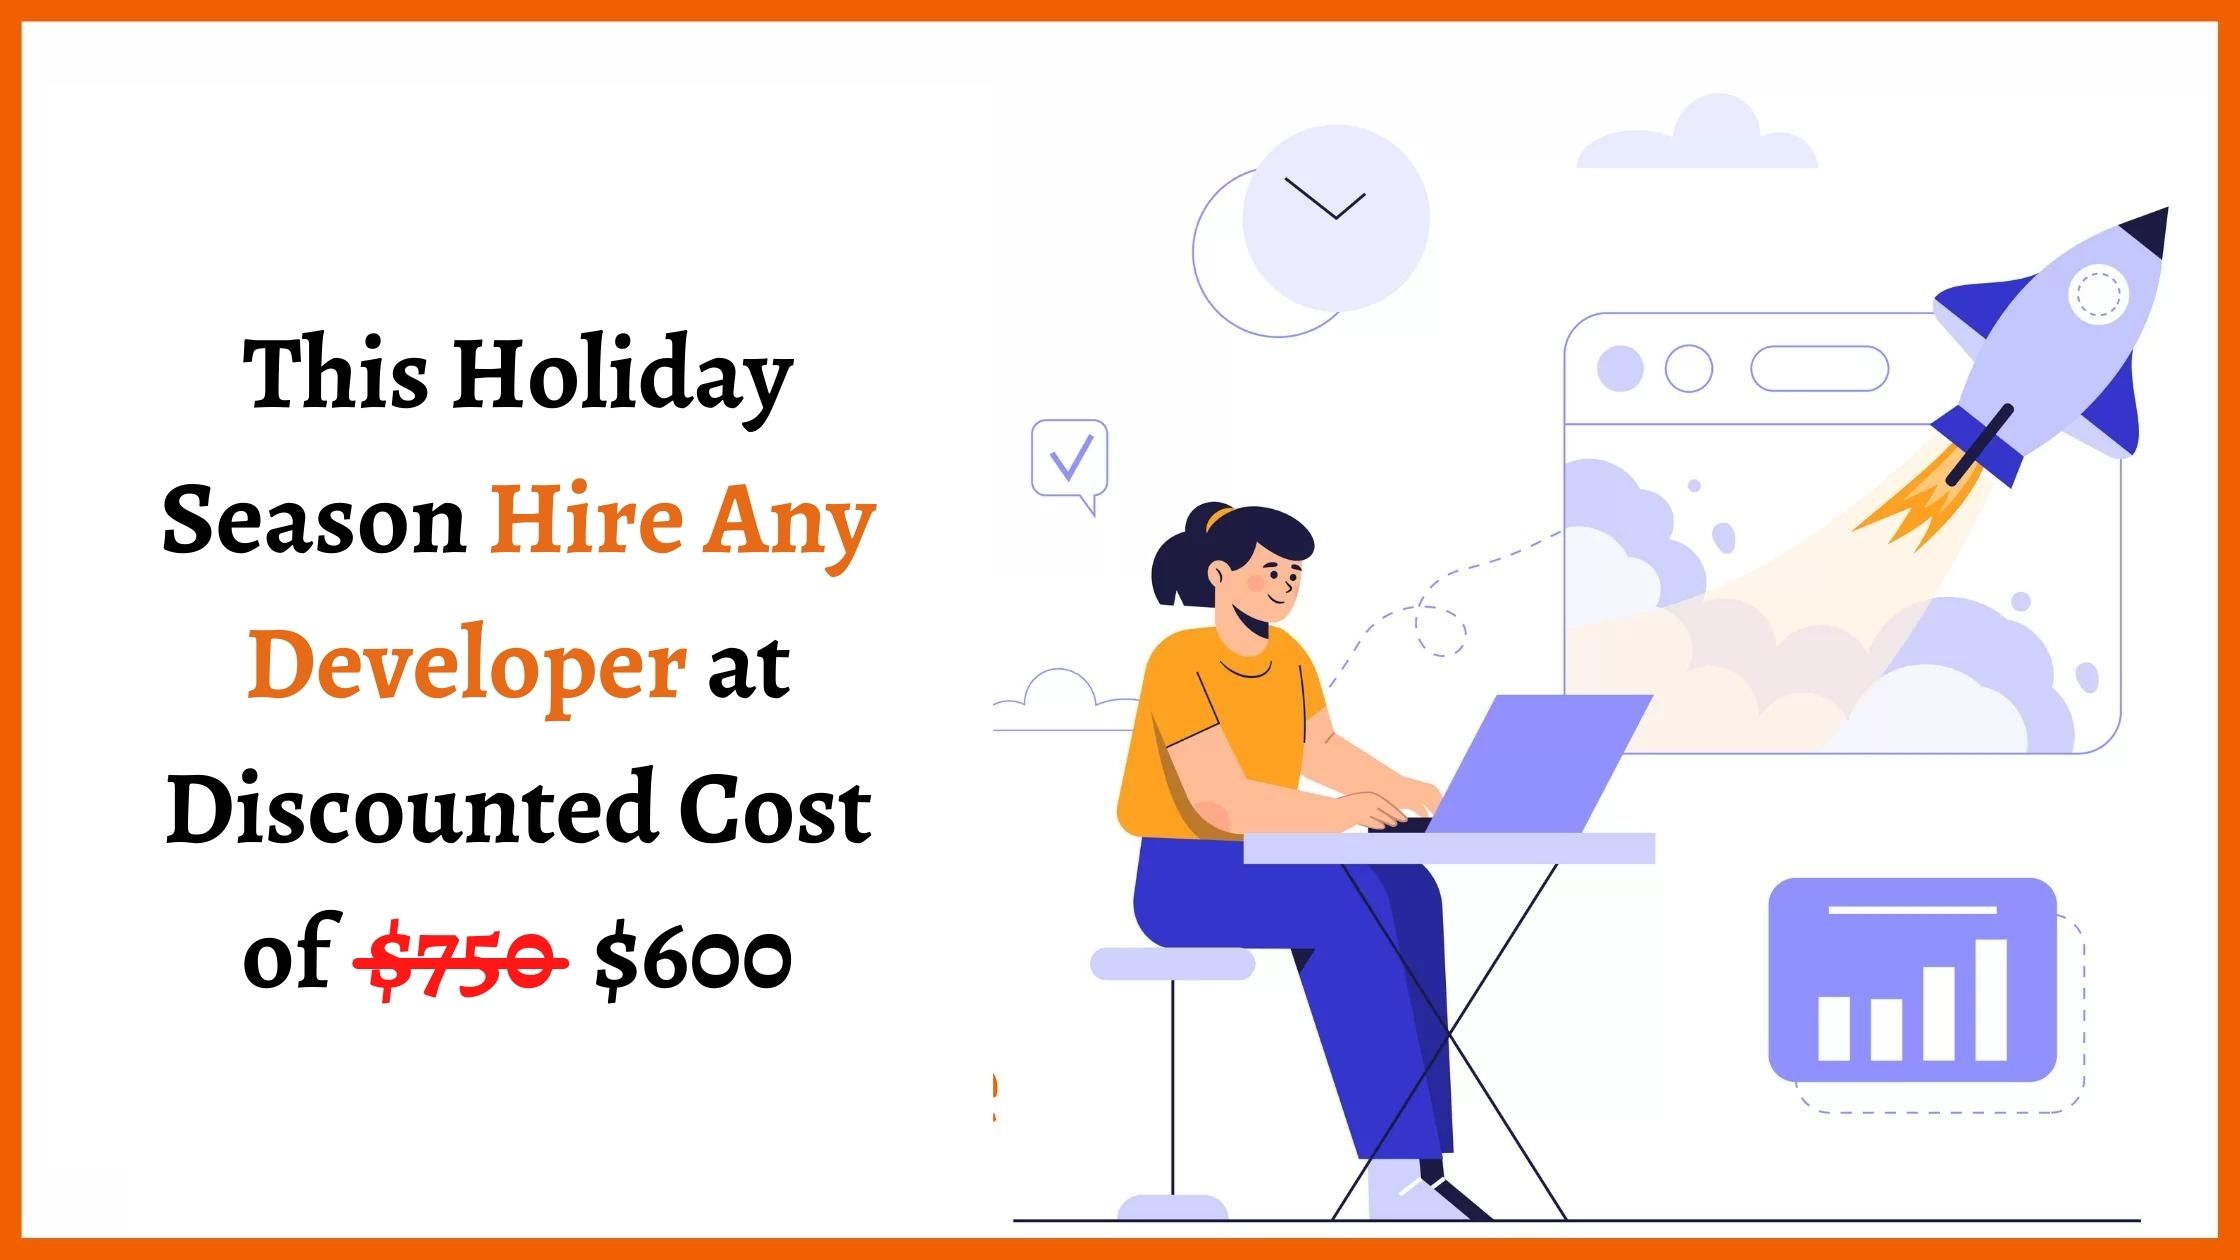 This Holiday Season Hire Any Developer at Discounted Cost of $600